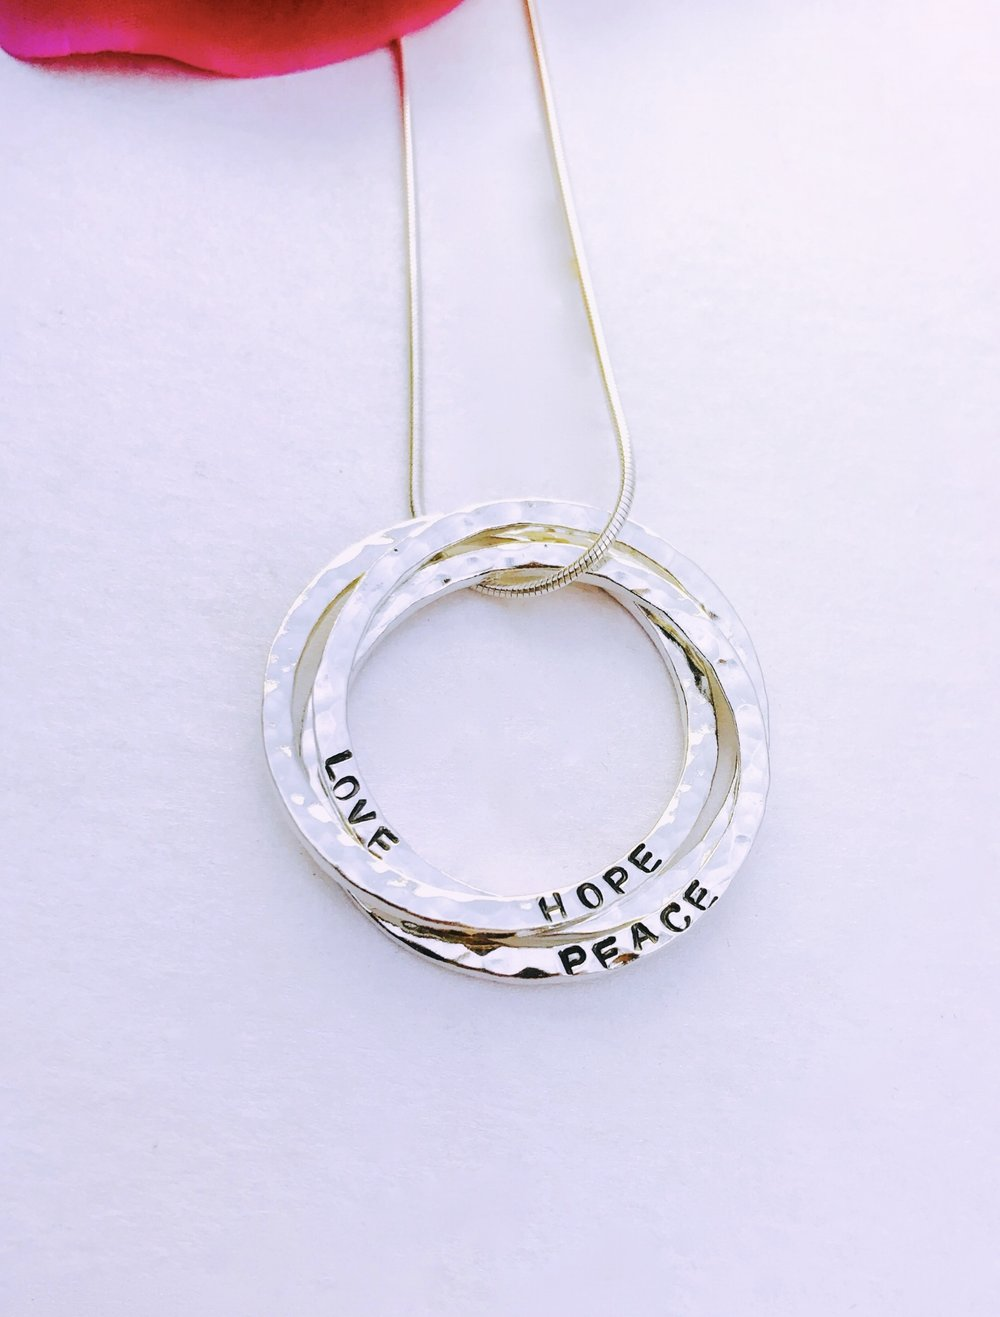 Serenity Rings Necklace